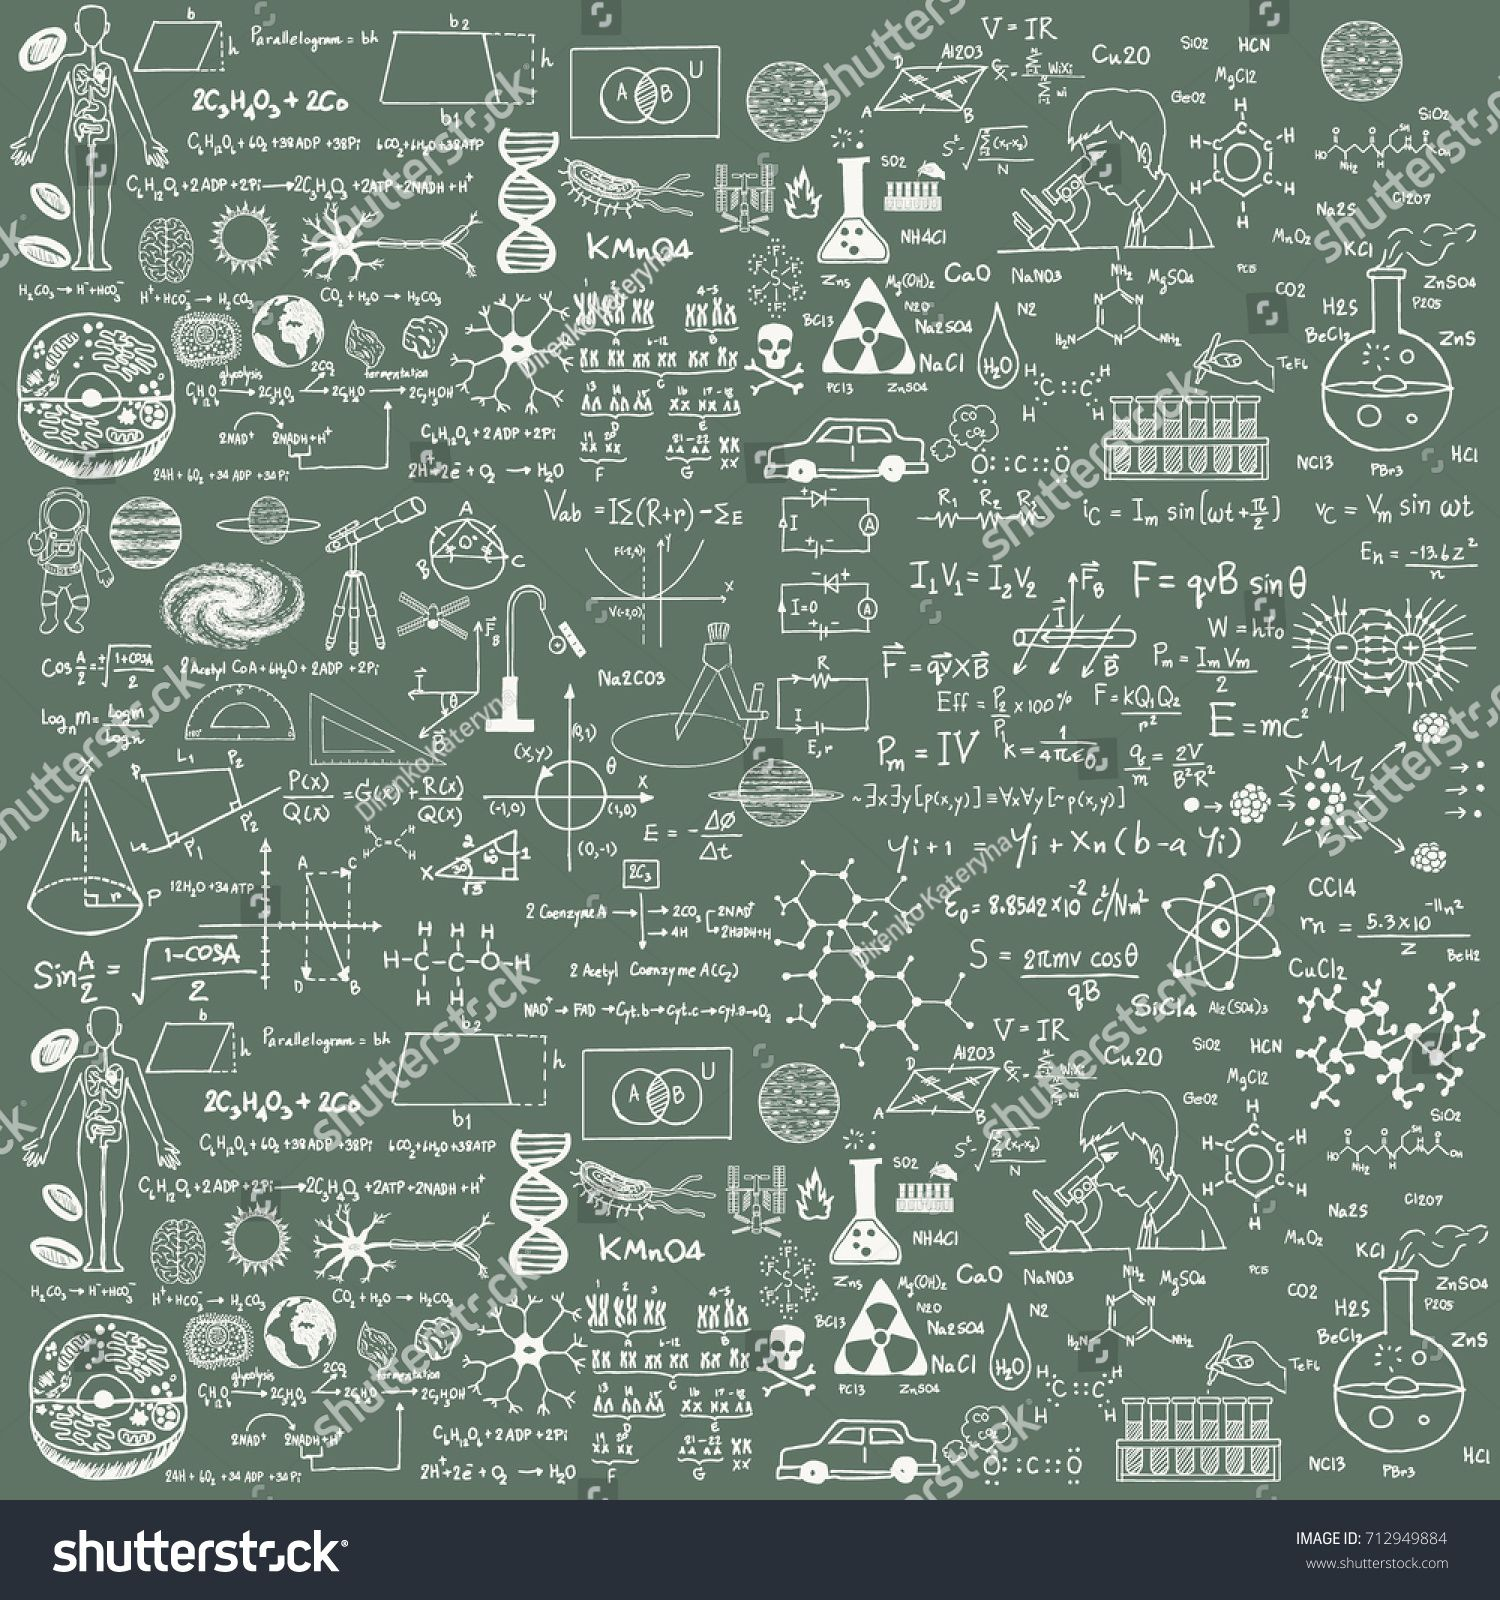 Background Of A School Board With Scribbles Painted Chalk A Traditional Image Of Chemistry And Algebra I Print Designs Inspiration School Board School Themes